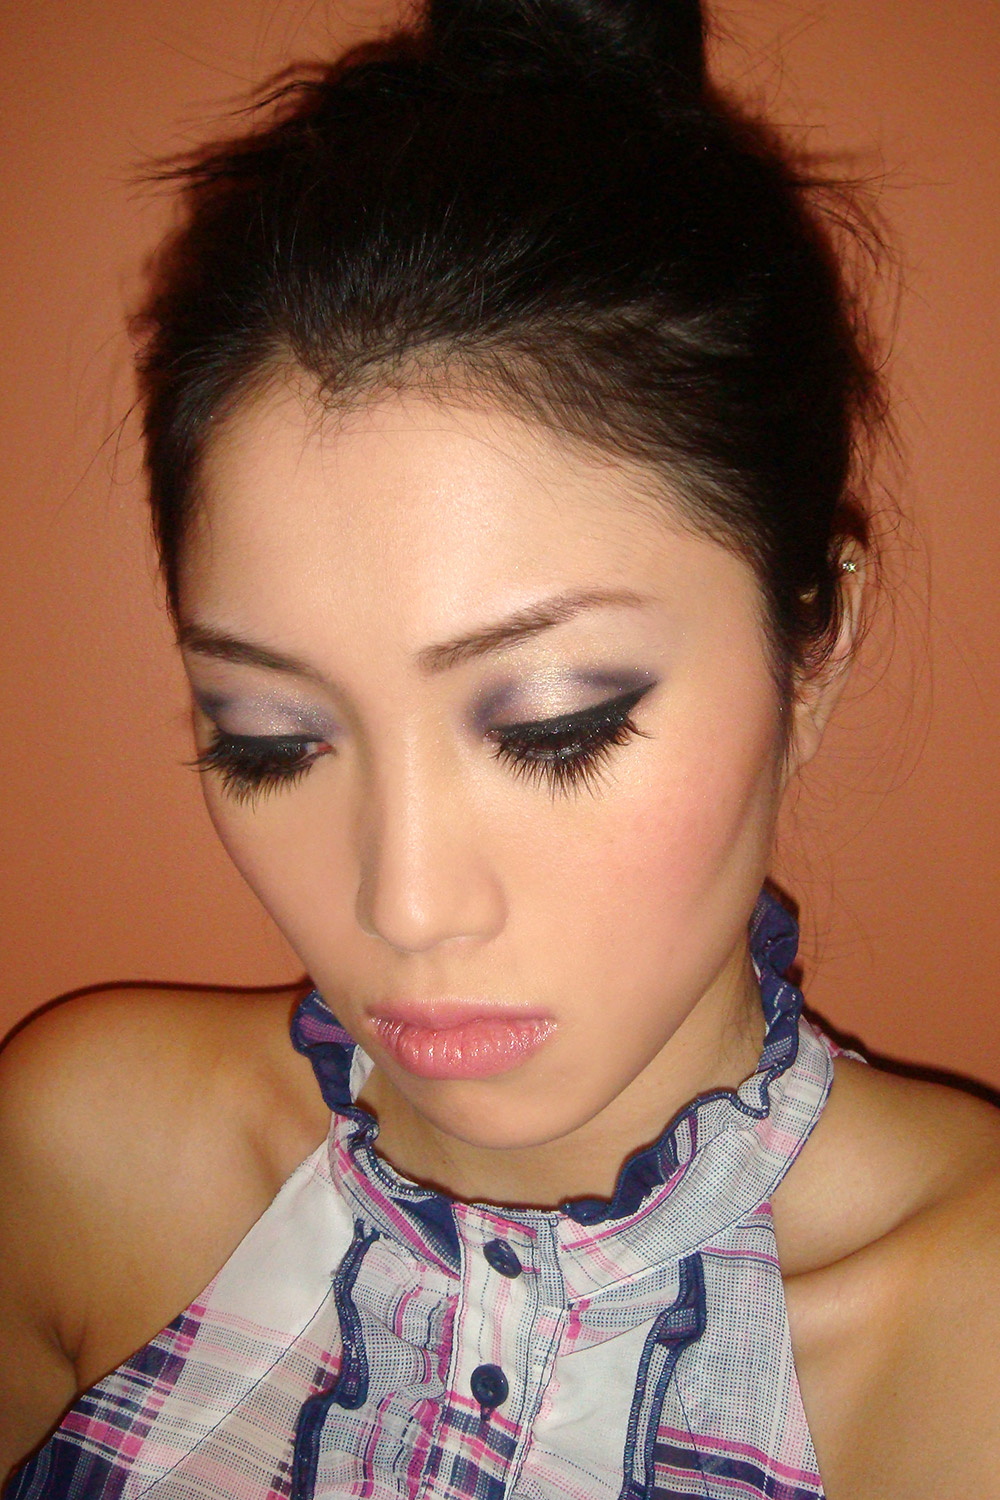 fotd mac hello kitty wild stylin� makeup look � makeup